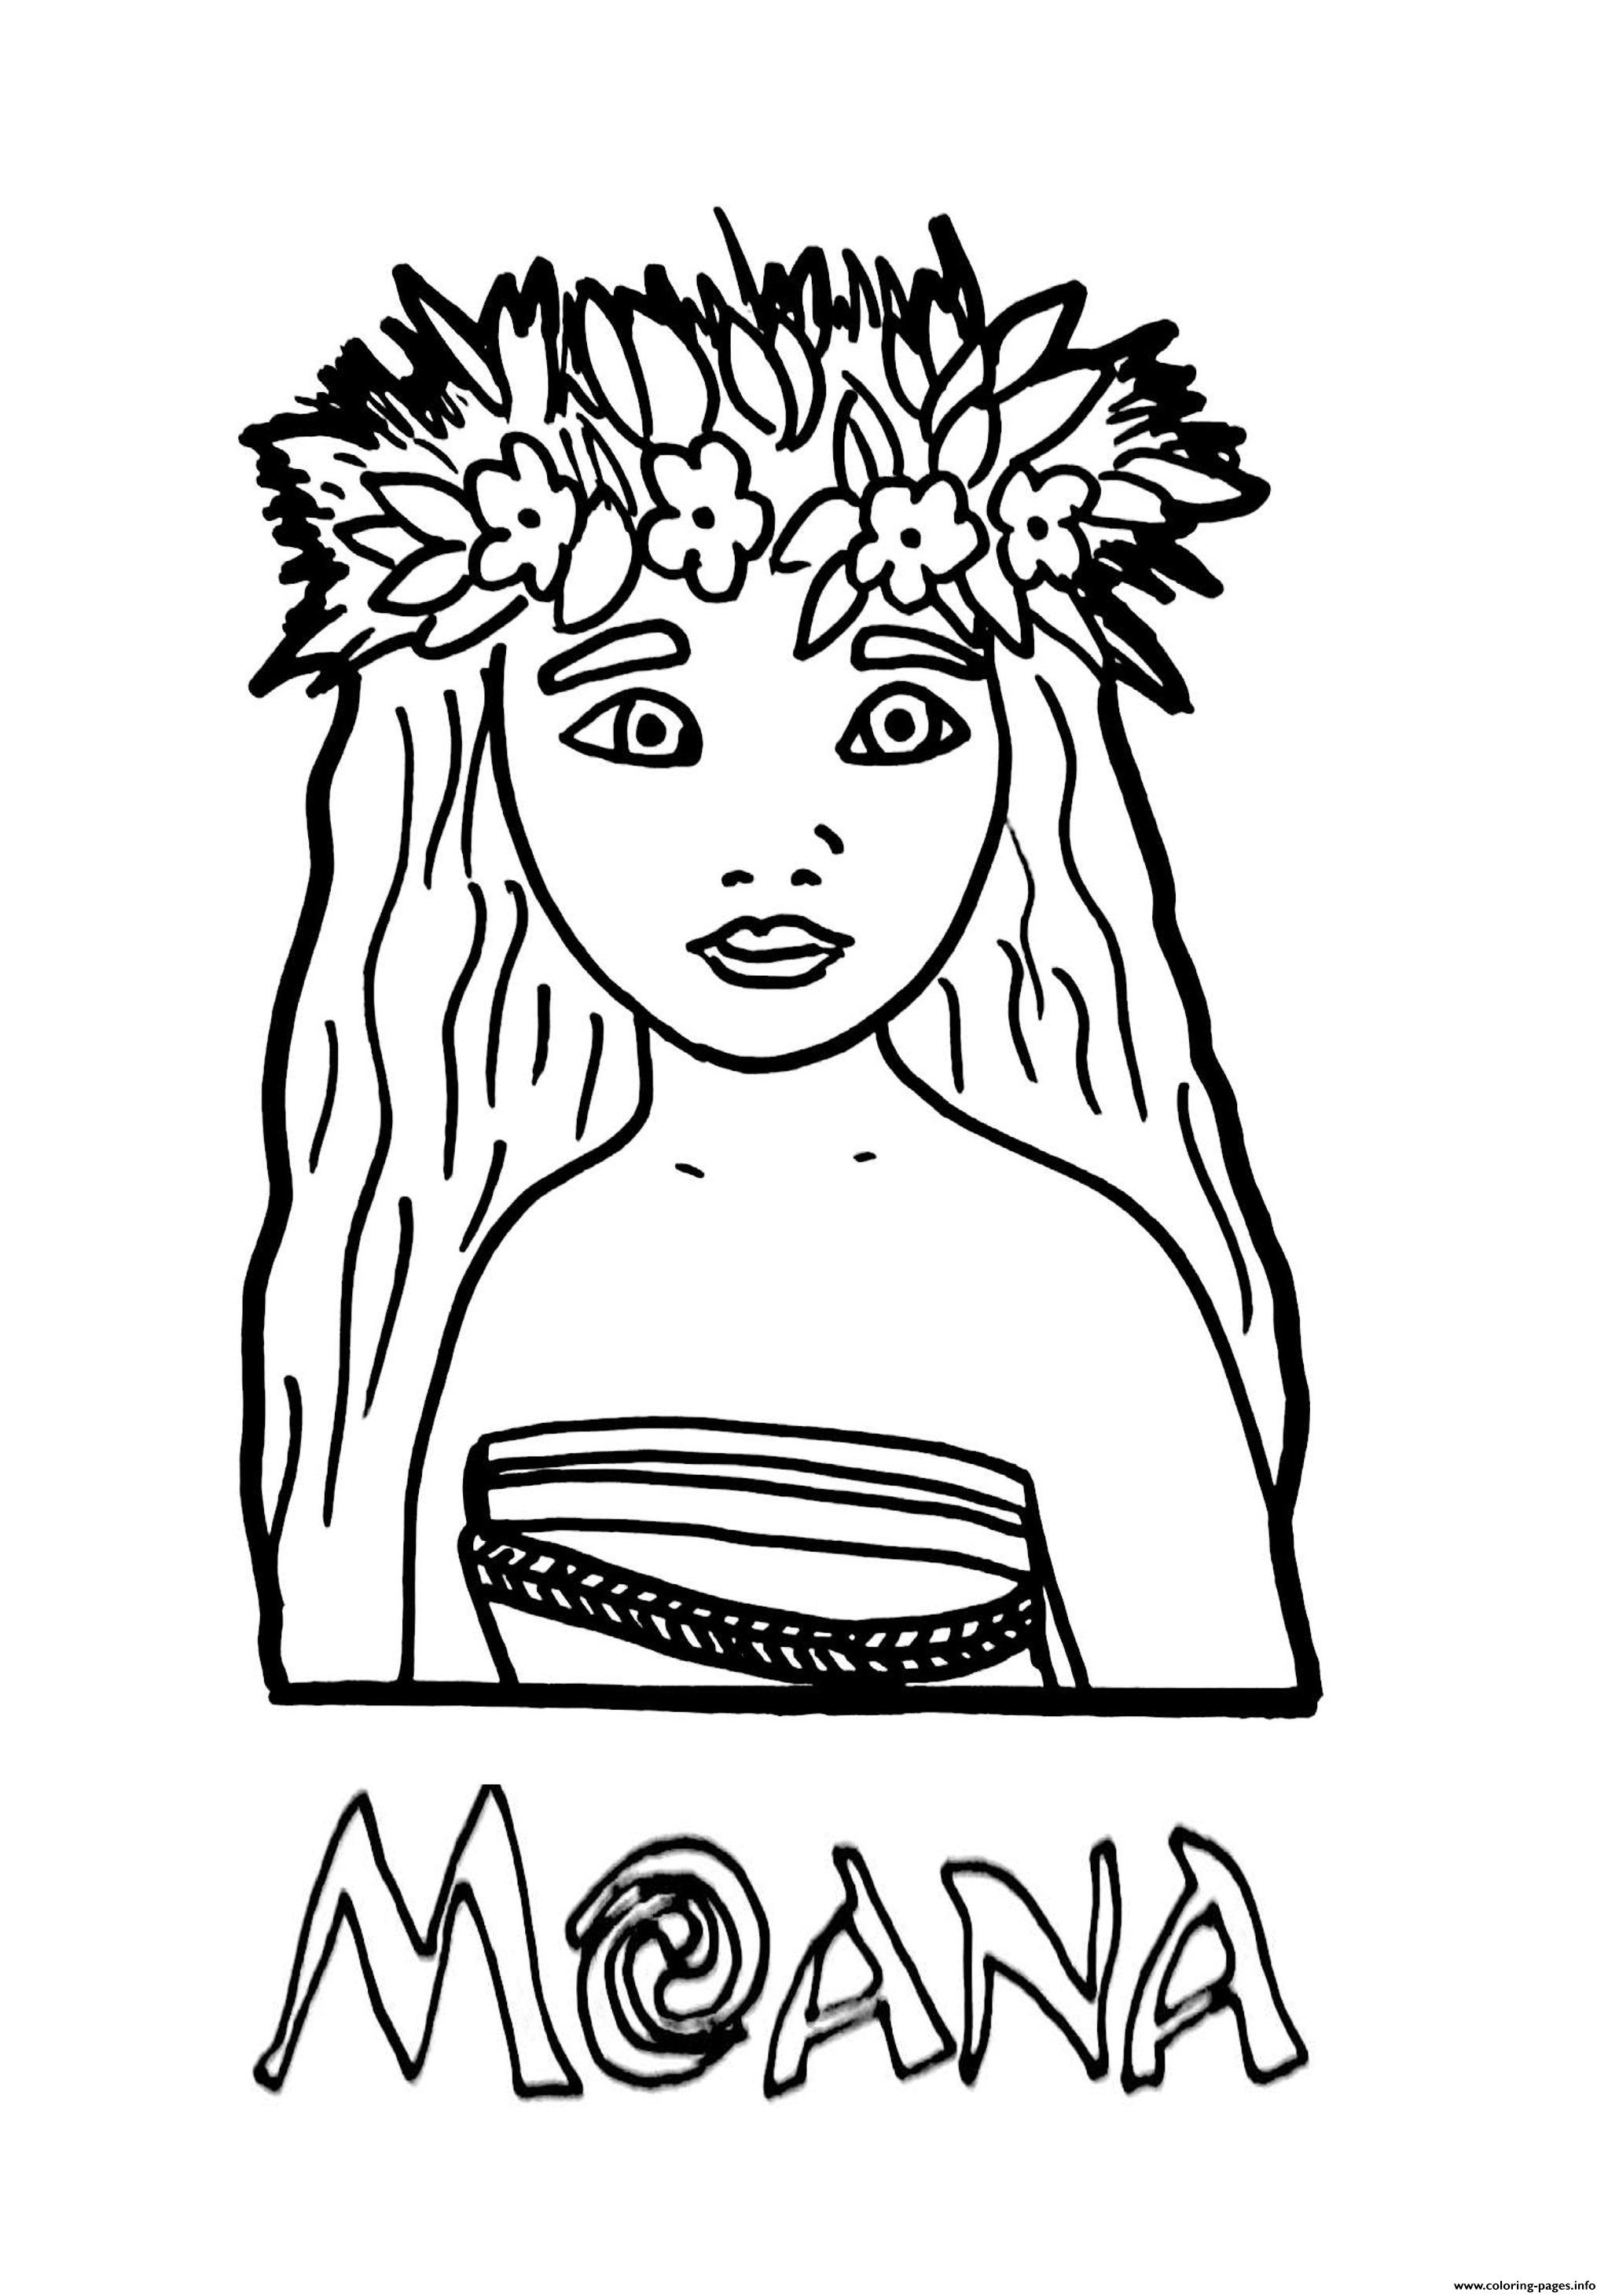 Coloring Pagesfo Moana Princess Printable Coloring Pages Book – Fun Time Gallery Of Engaging Line Coloring Pages for Kids 19 Children Elegant Paper to Print